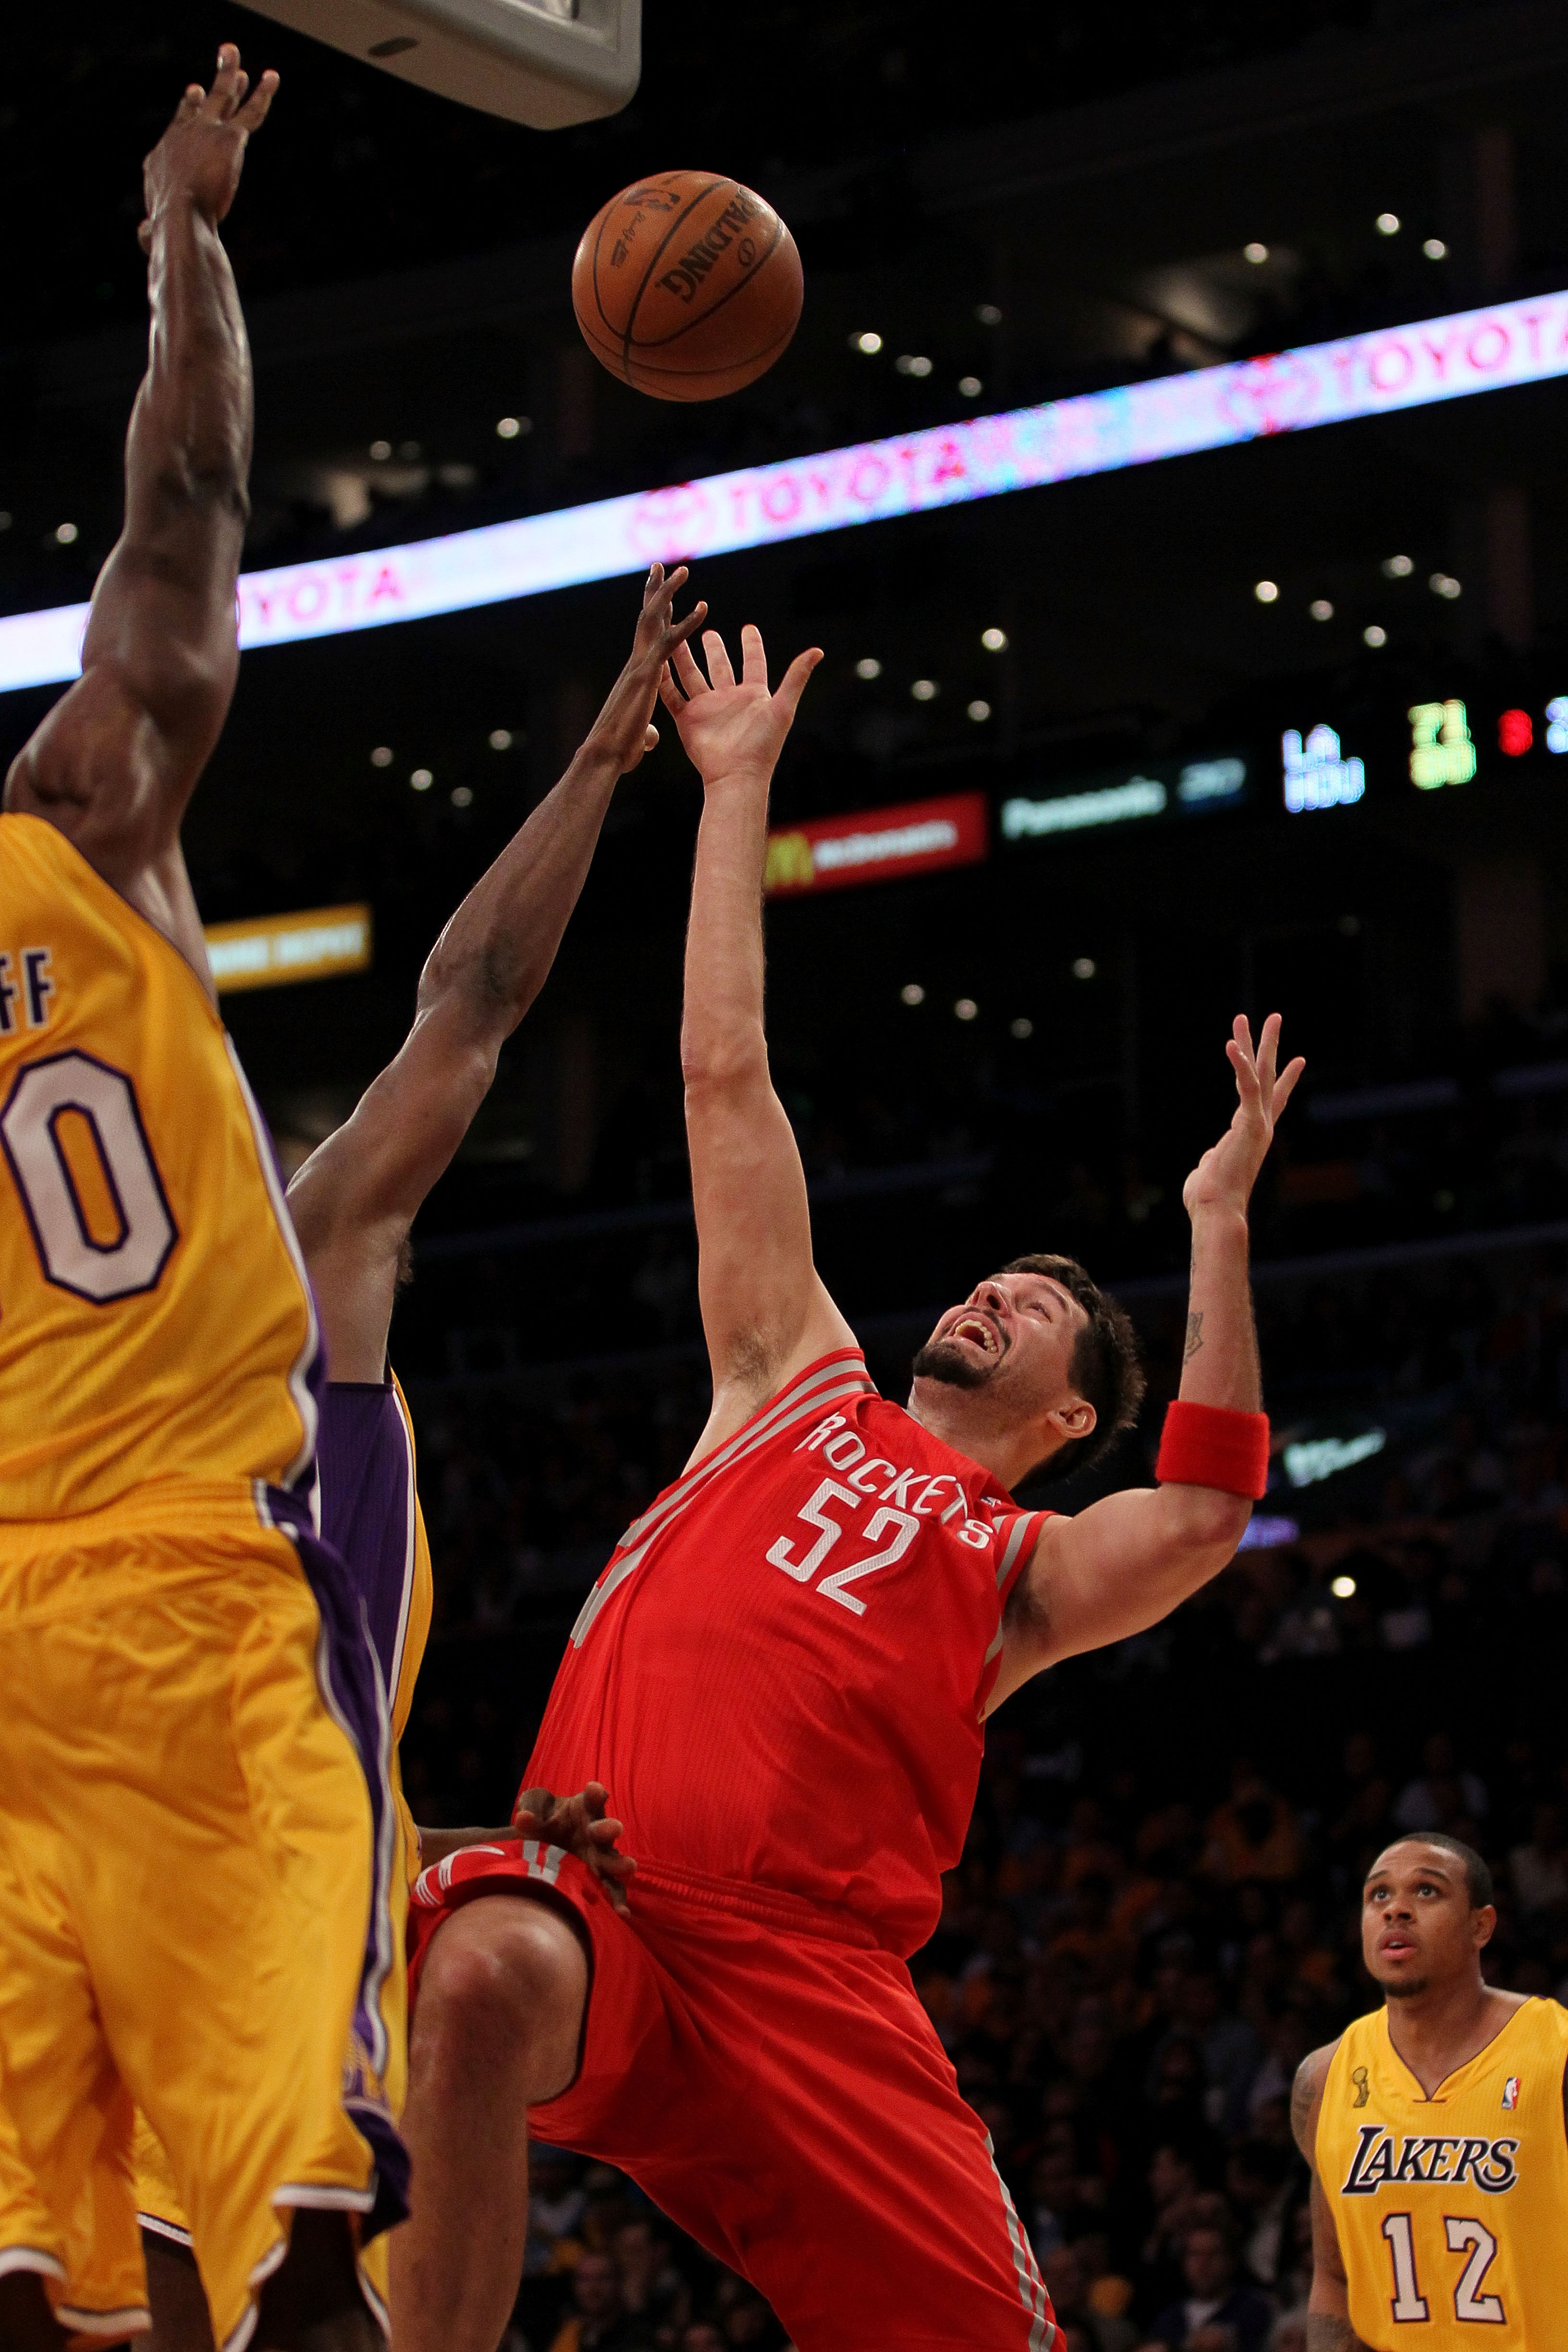 LOS ANGELES, CA - OCTOBER 26:  Brad Miller #52 of the Houston Rockets takes a shot against the Los Angeles Lakers during their game at Staples Center on October 26, 2010 in Los Angeles, California. NOTE TO USER: User expressly acknowledges and agrees that